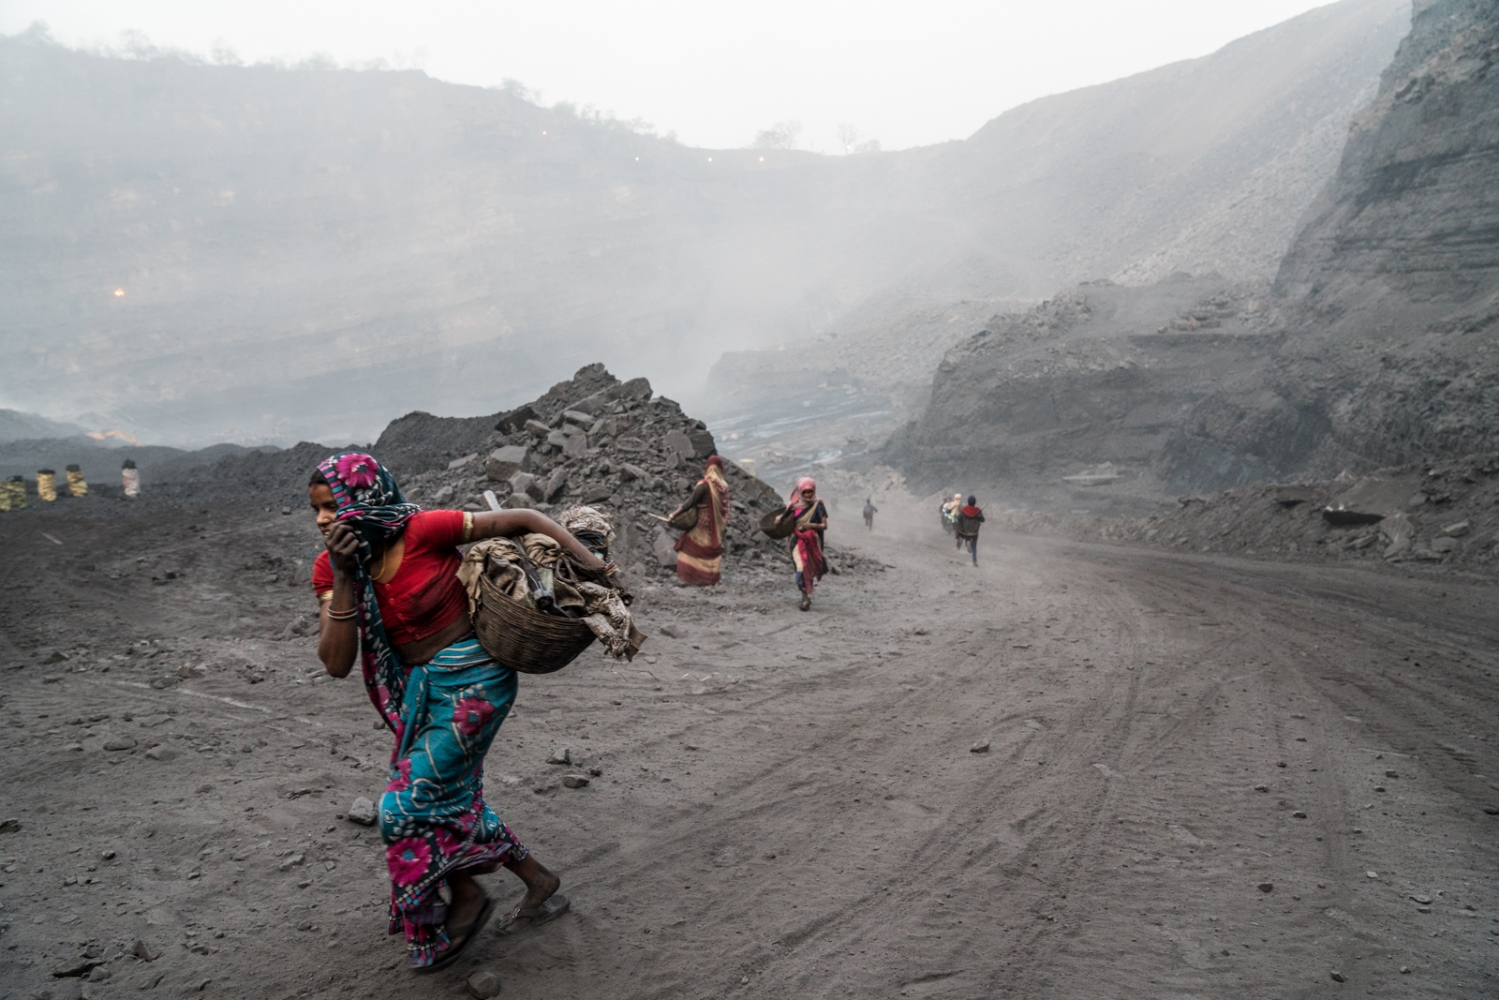 Women run with their belongings after hearing that the police are coming to the mine to check for scavenger activity.